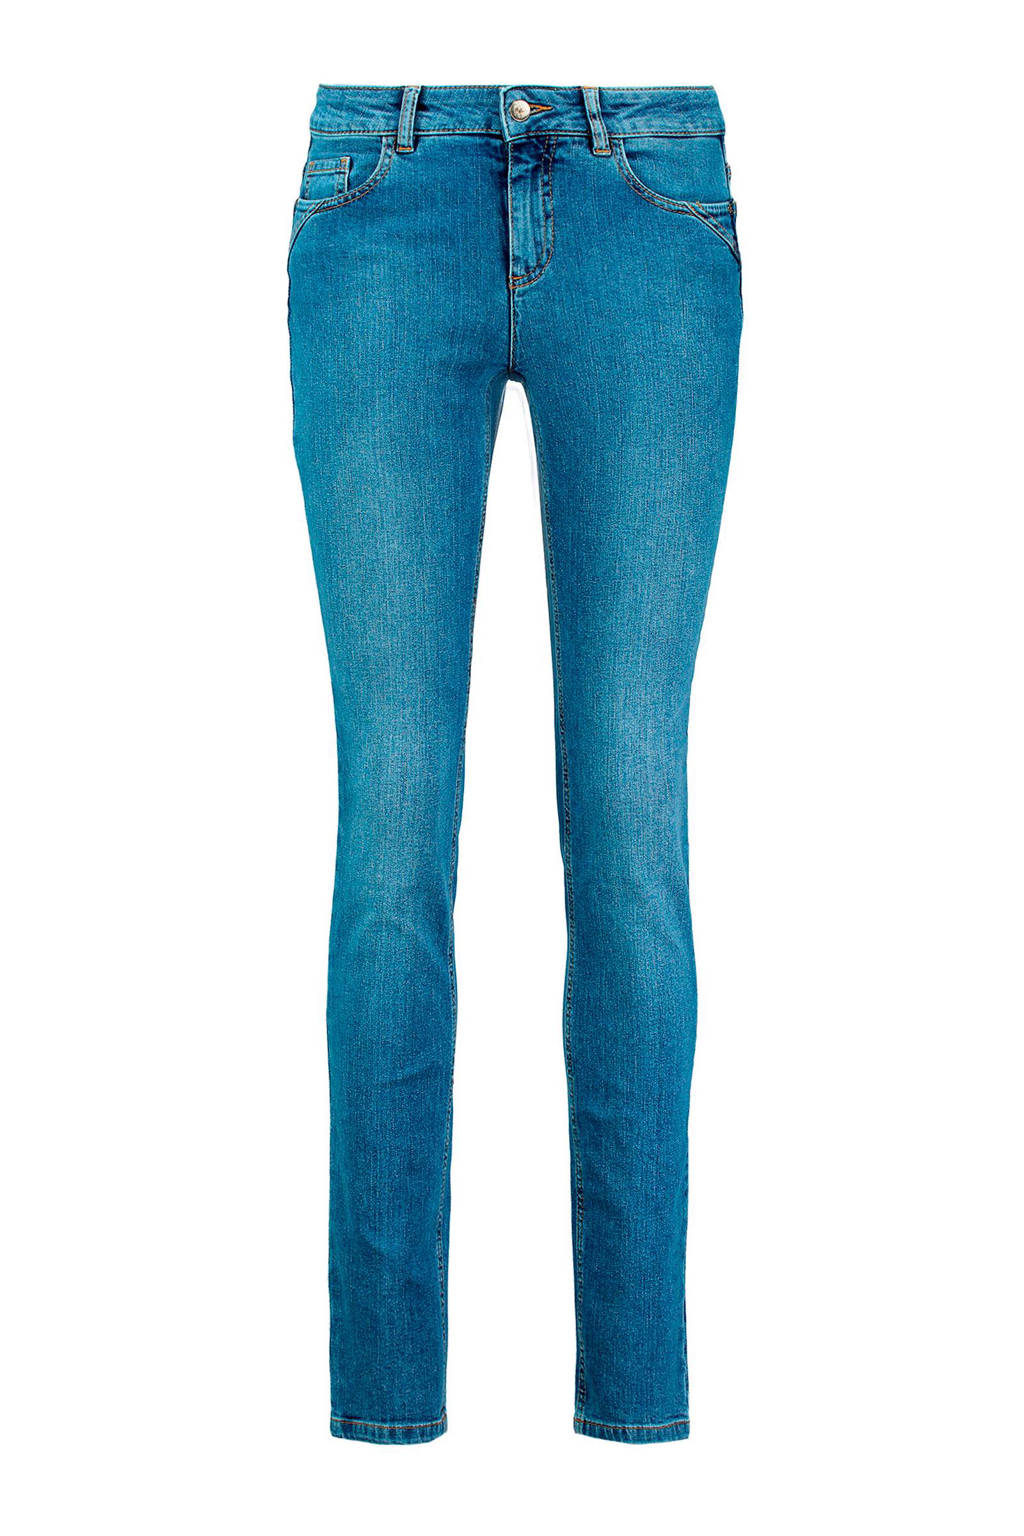 Claudia Sträter skinny fit jeans, Stonewashed